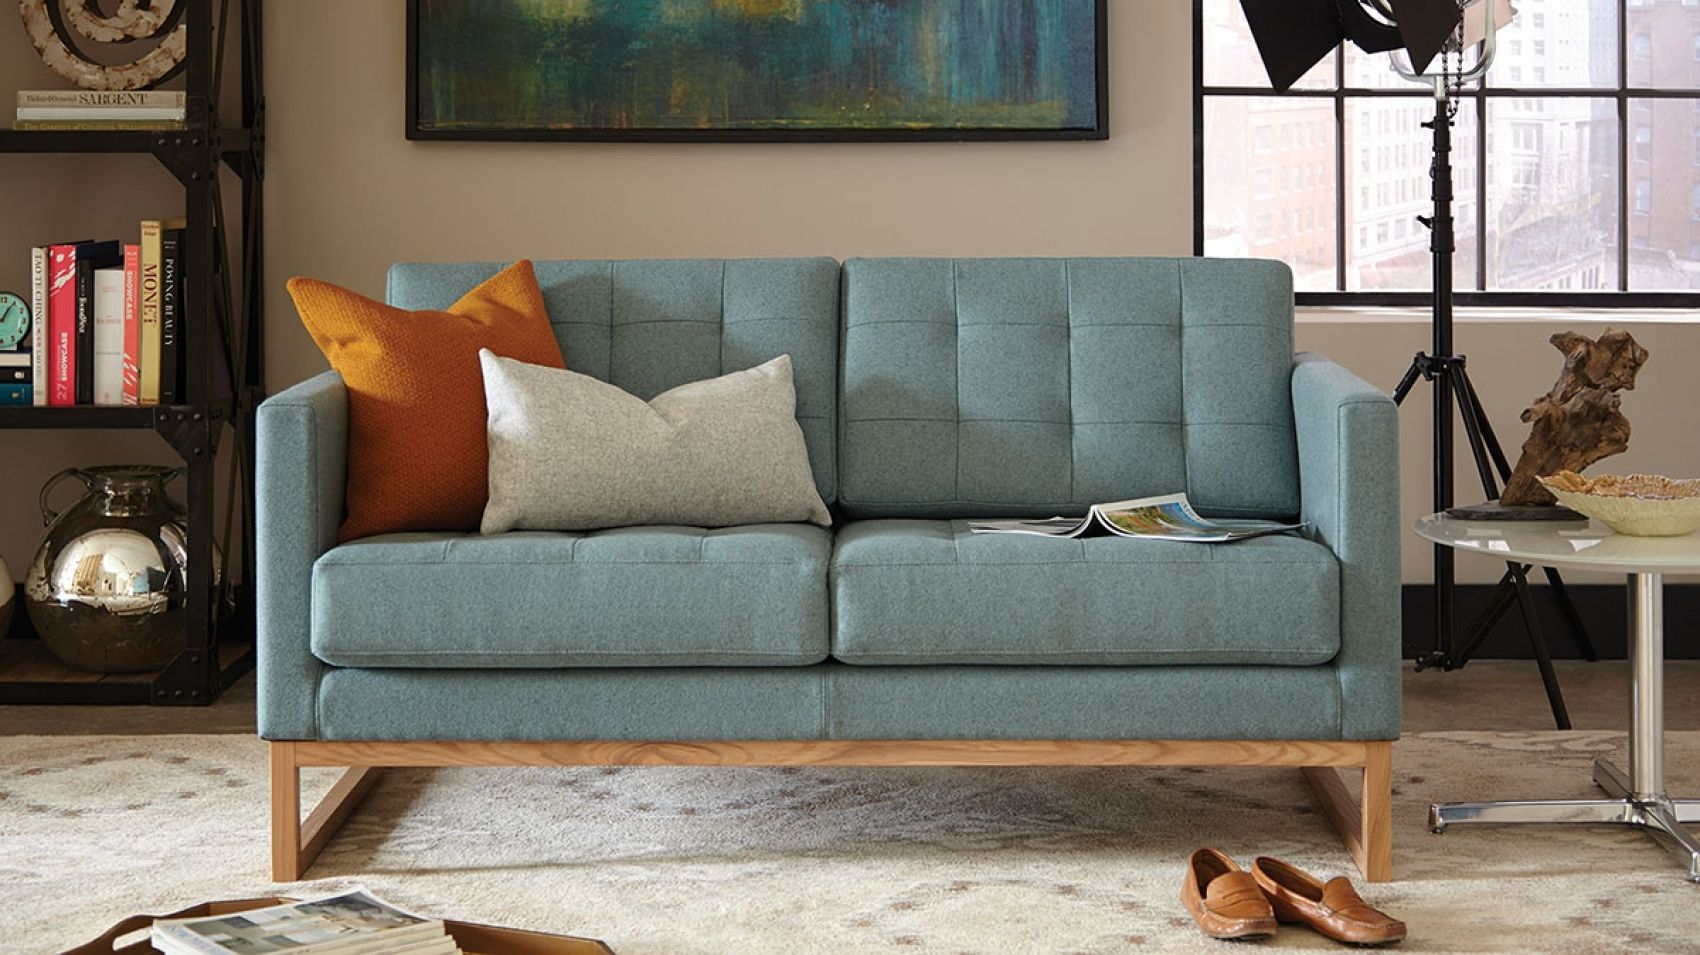 Fabulous Cubic Loewenstein Availity Lounge Seating Furniture Unemploymentrelief Wooden Chair Designs For Living Room Unemploymentrelieforg